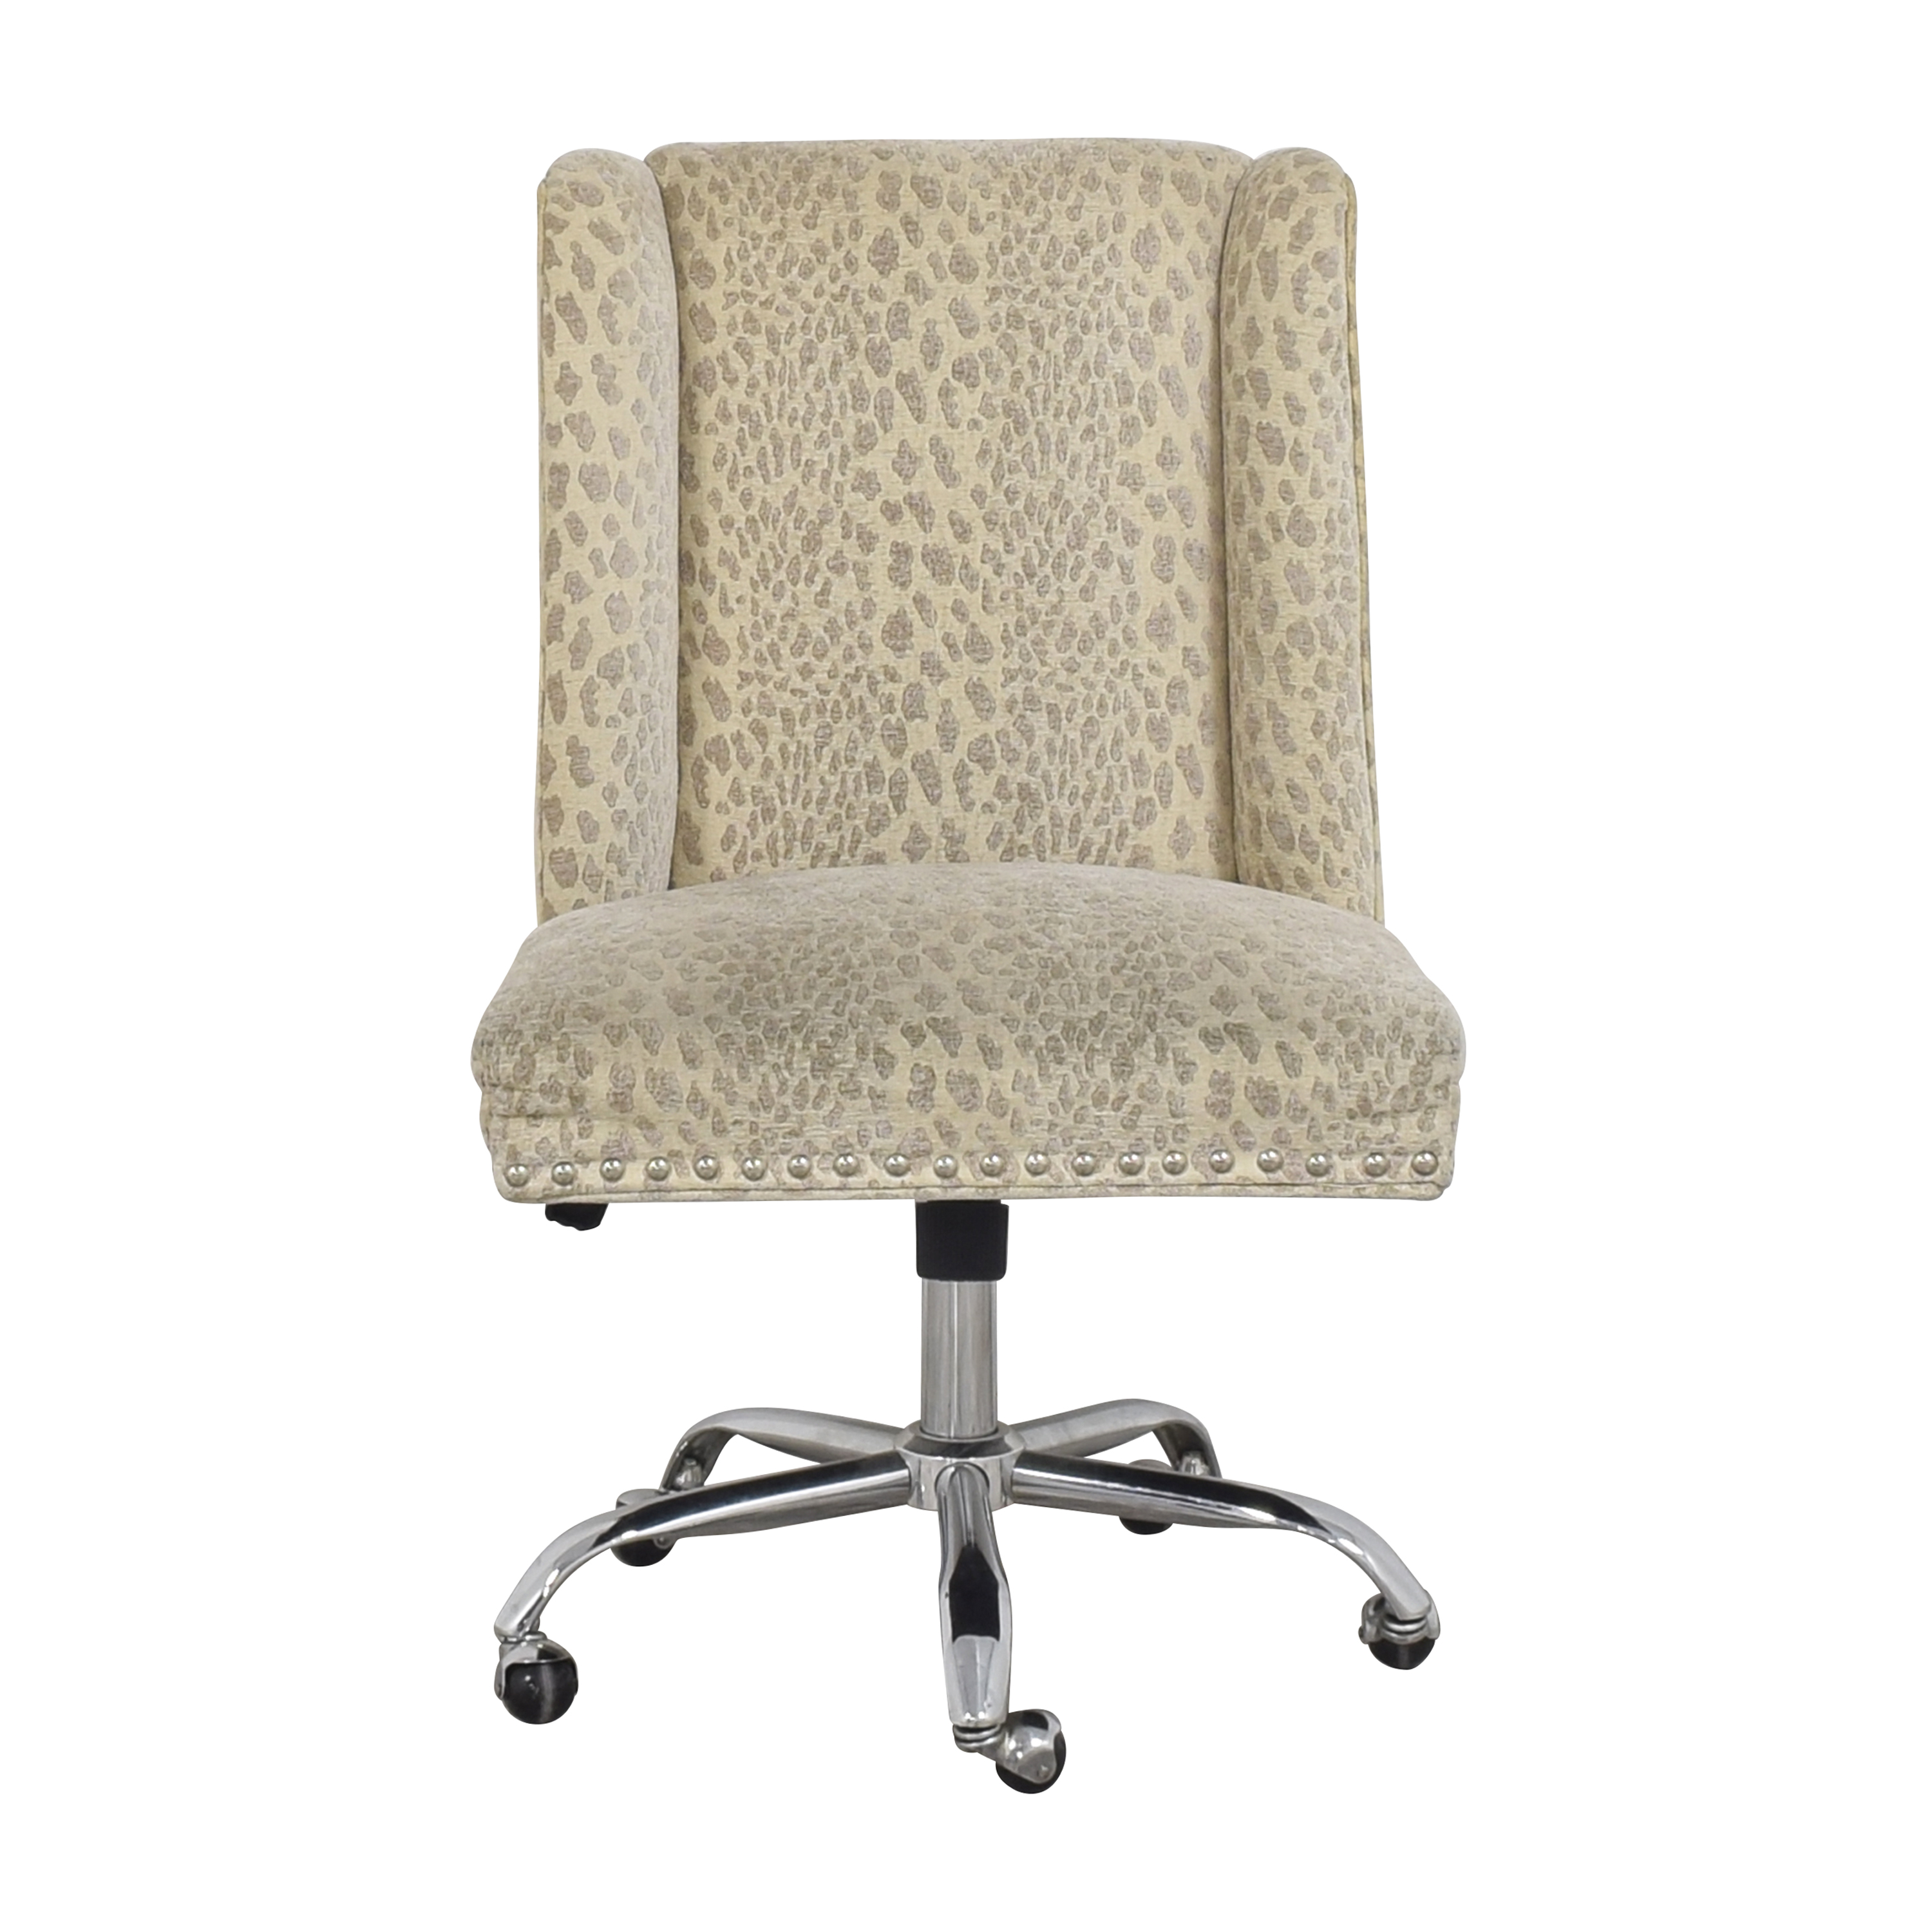 Fabric Desk Office Chair pa